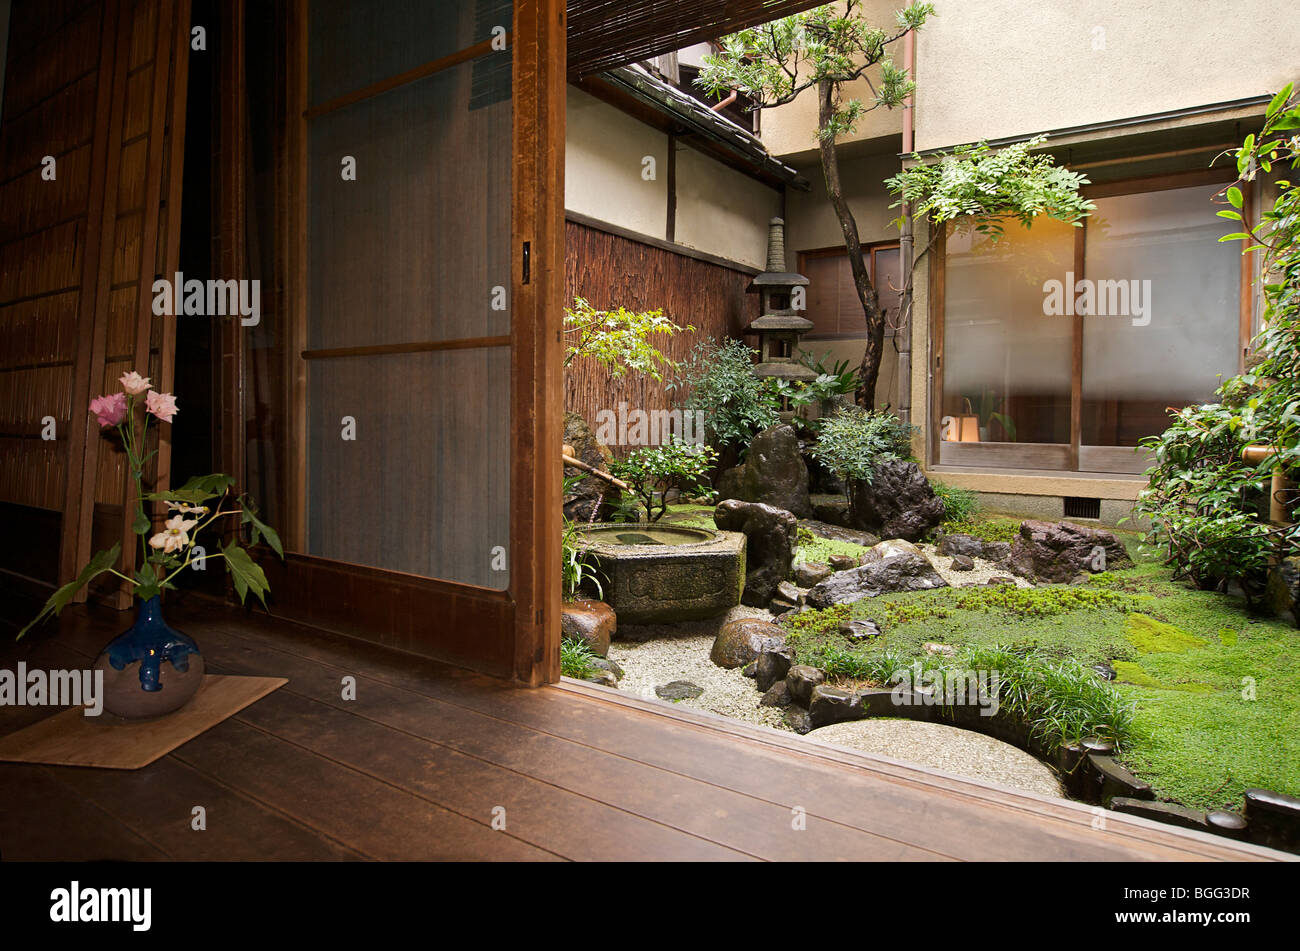 kyoto chat sites Japanese guest houses list of ryokans in kyoto our extensive list of japanese style inns, hotels, ryokans and more in kyoto includes price, guest rating and more.